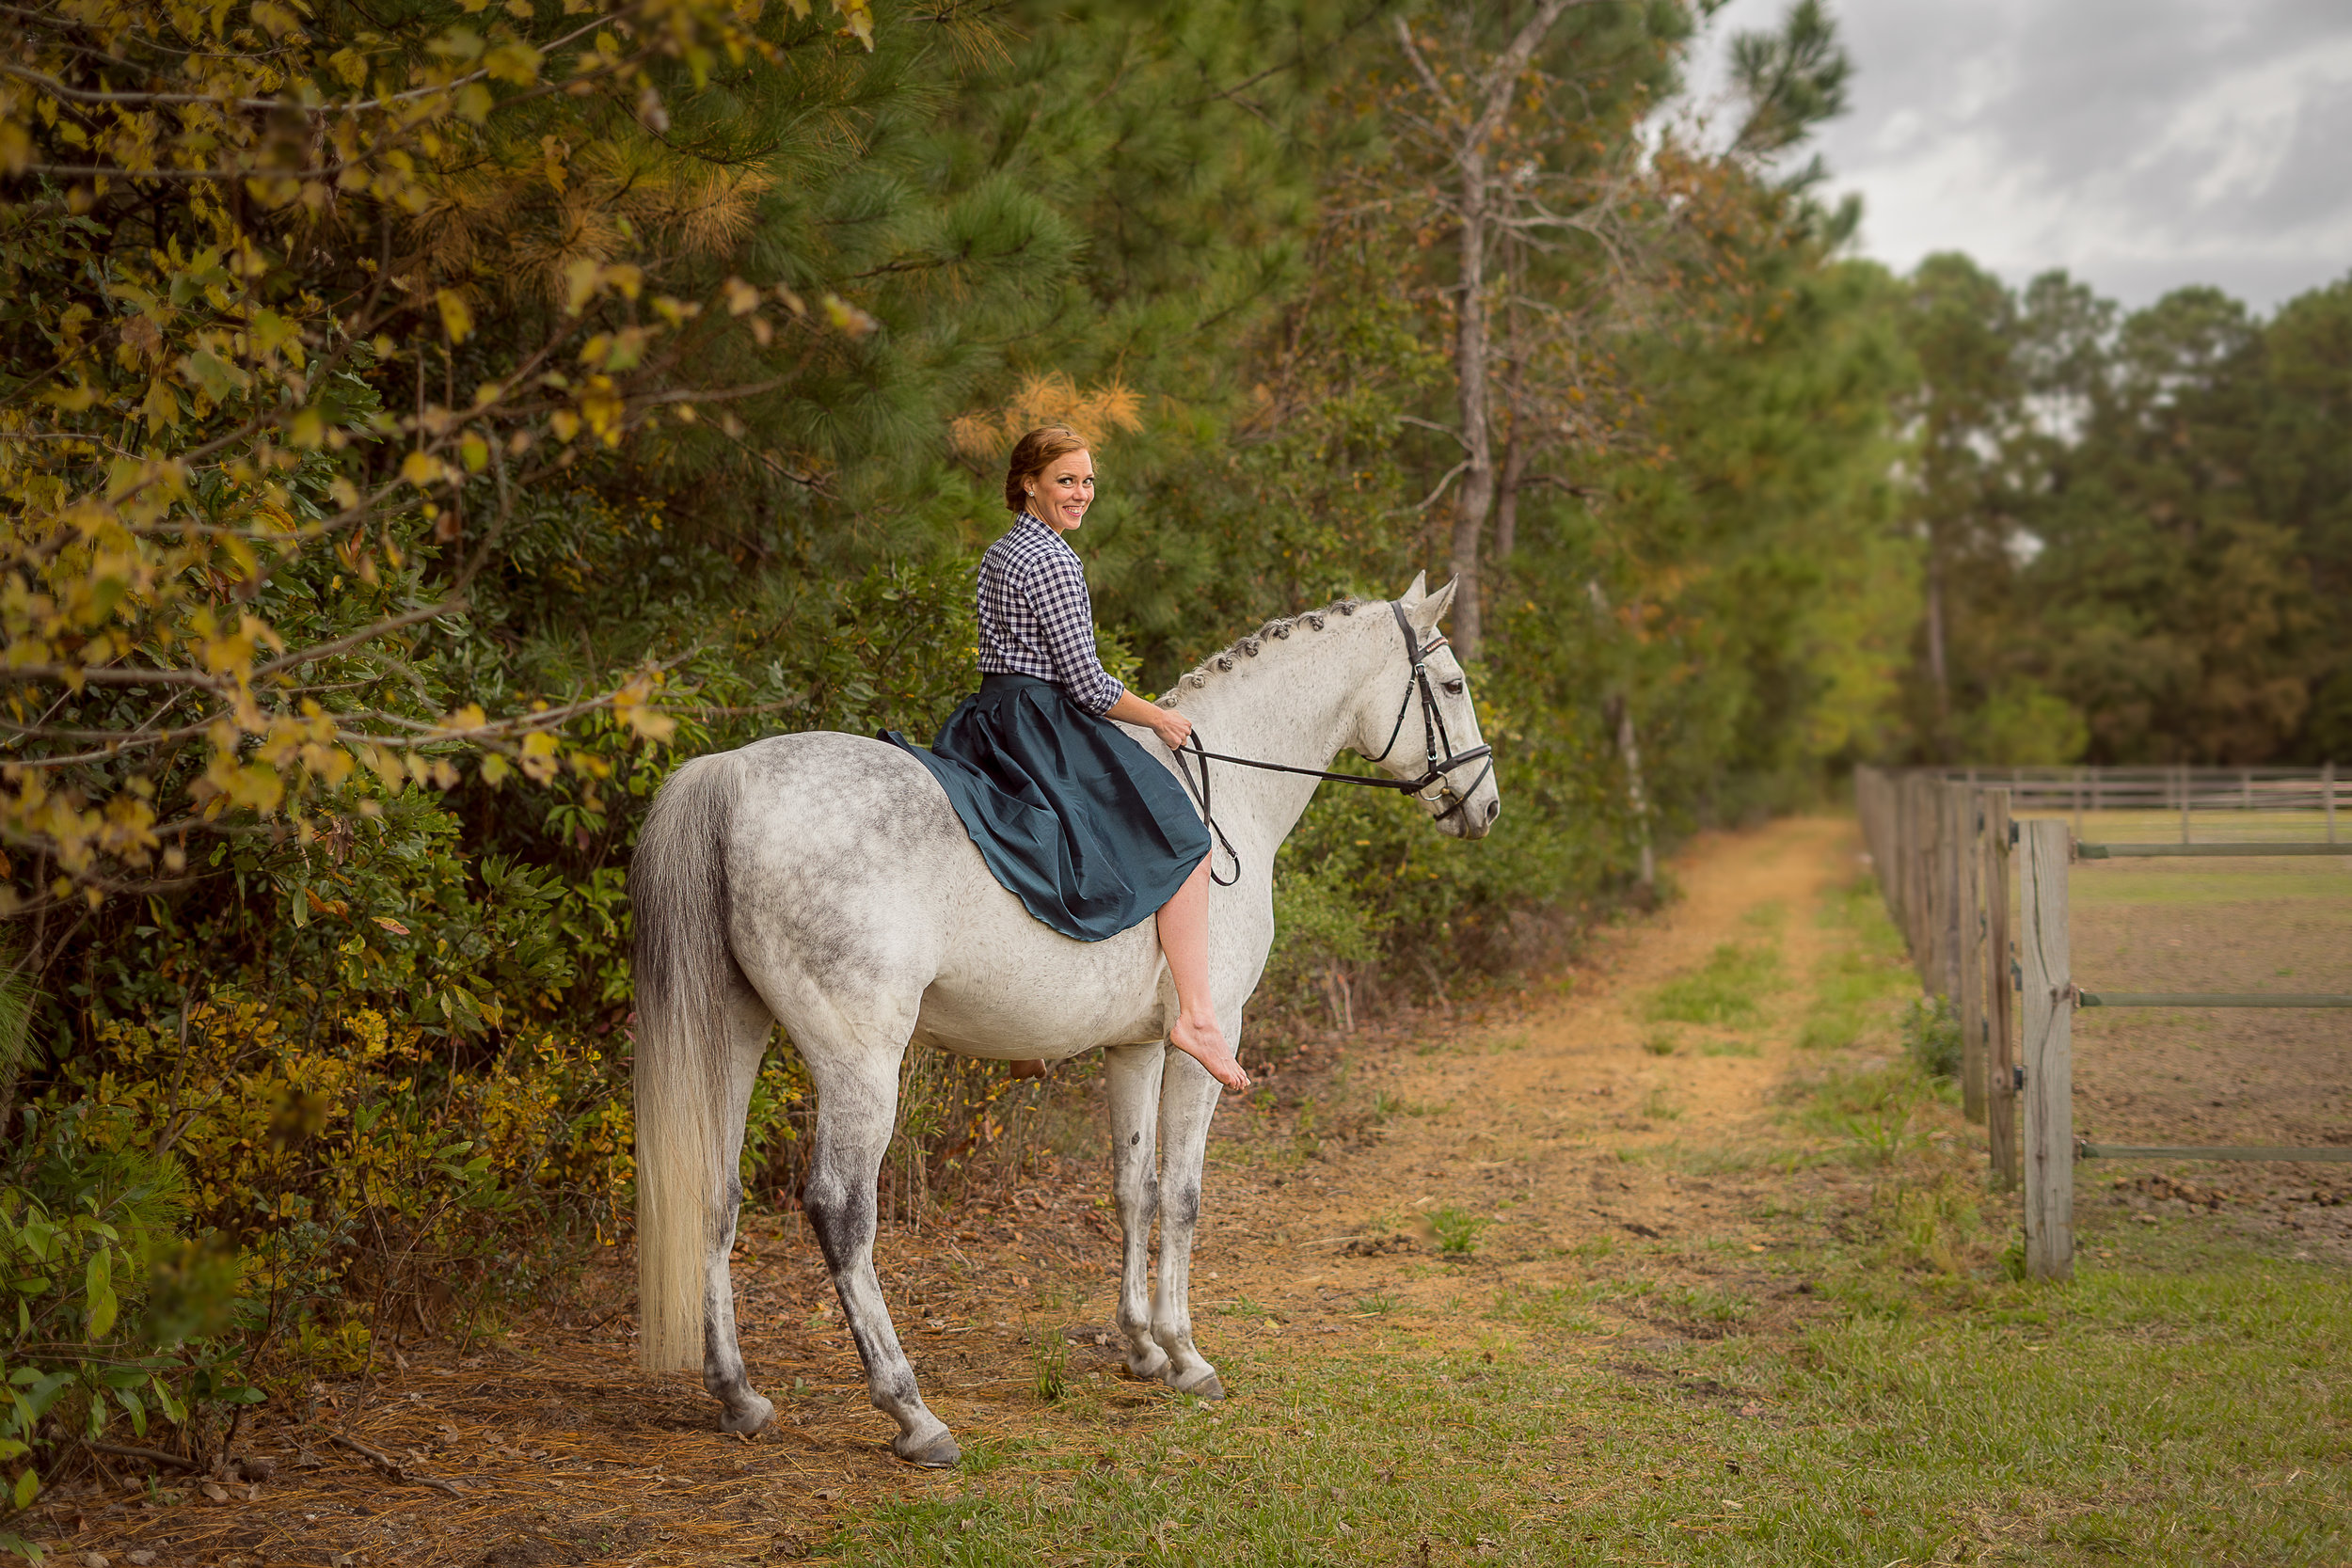 Ashley and Talladega are a once in a lifetime pair. When I shot this I knew I wanted it to look like an oil painting. It's so classically beautiful and timelessly stylish, just like the two of them. Adore working with them each year!